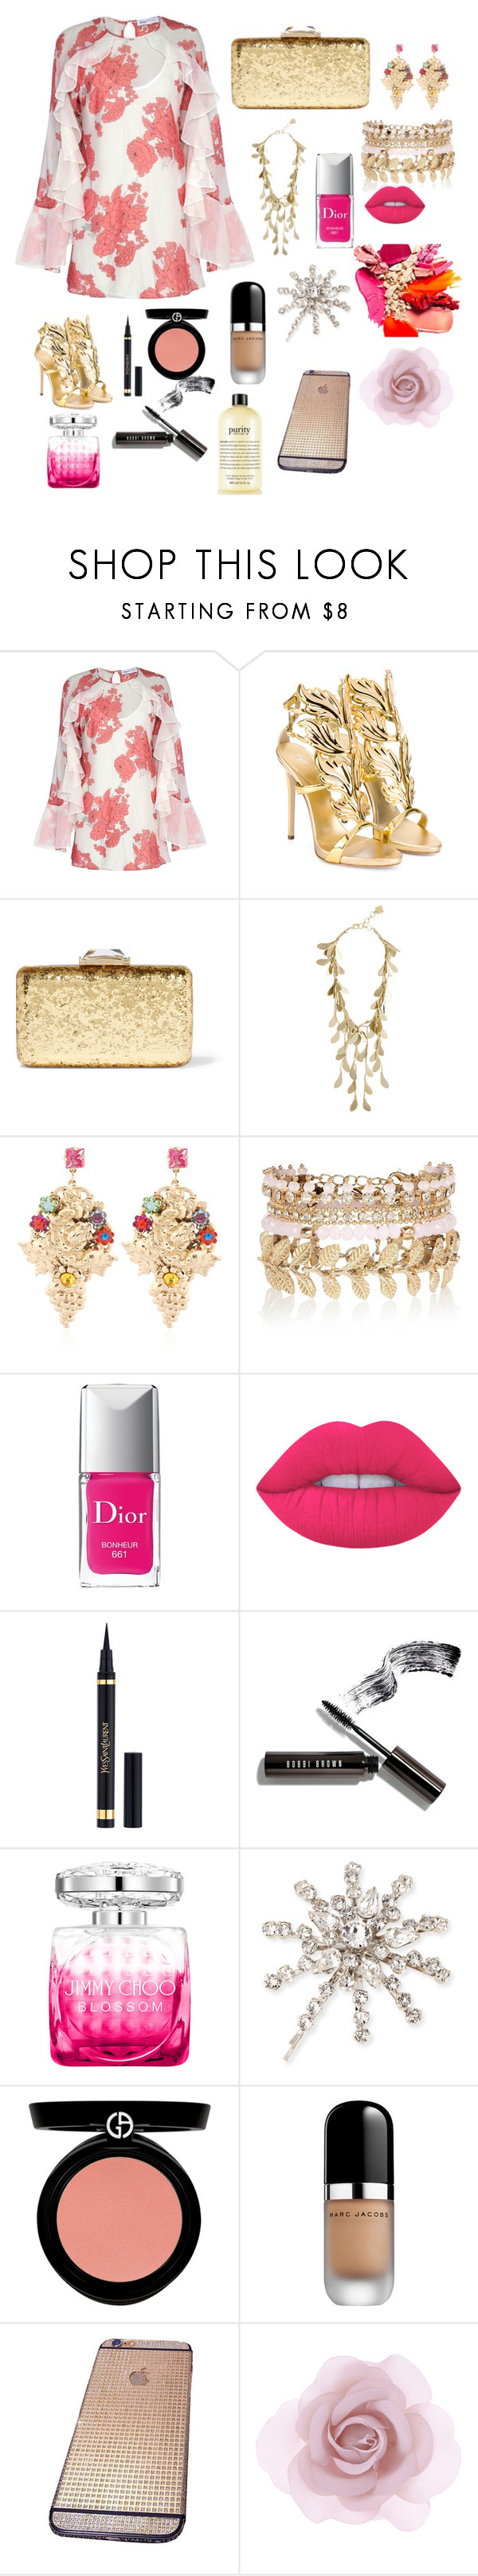 """""""Roses and Gold"""" by teresalcaine ❤ liked on Polyvore featuring Alice McCall, Giuseppe Zanotti, KOTUR, BCBGMAXAZRIA, Halo & Co., River Island, Christian Dior, Lime Crime, Yves Saint Laurent and Bobbi Brown Cosmetics"""